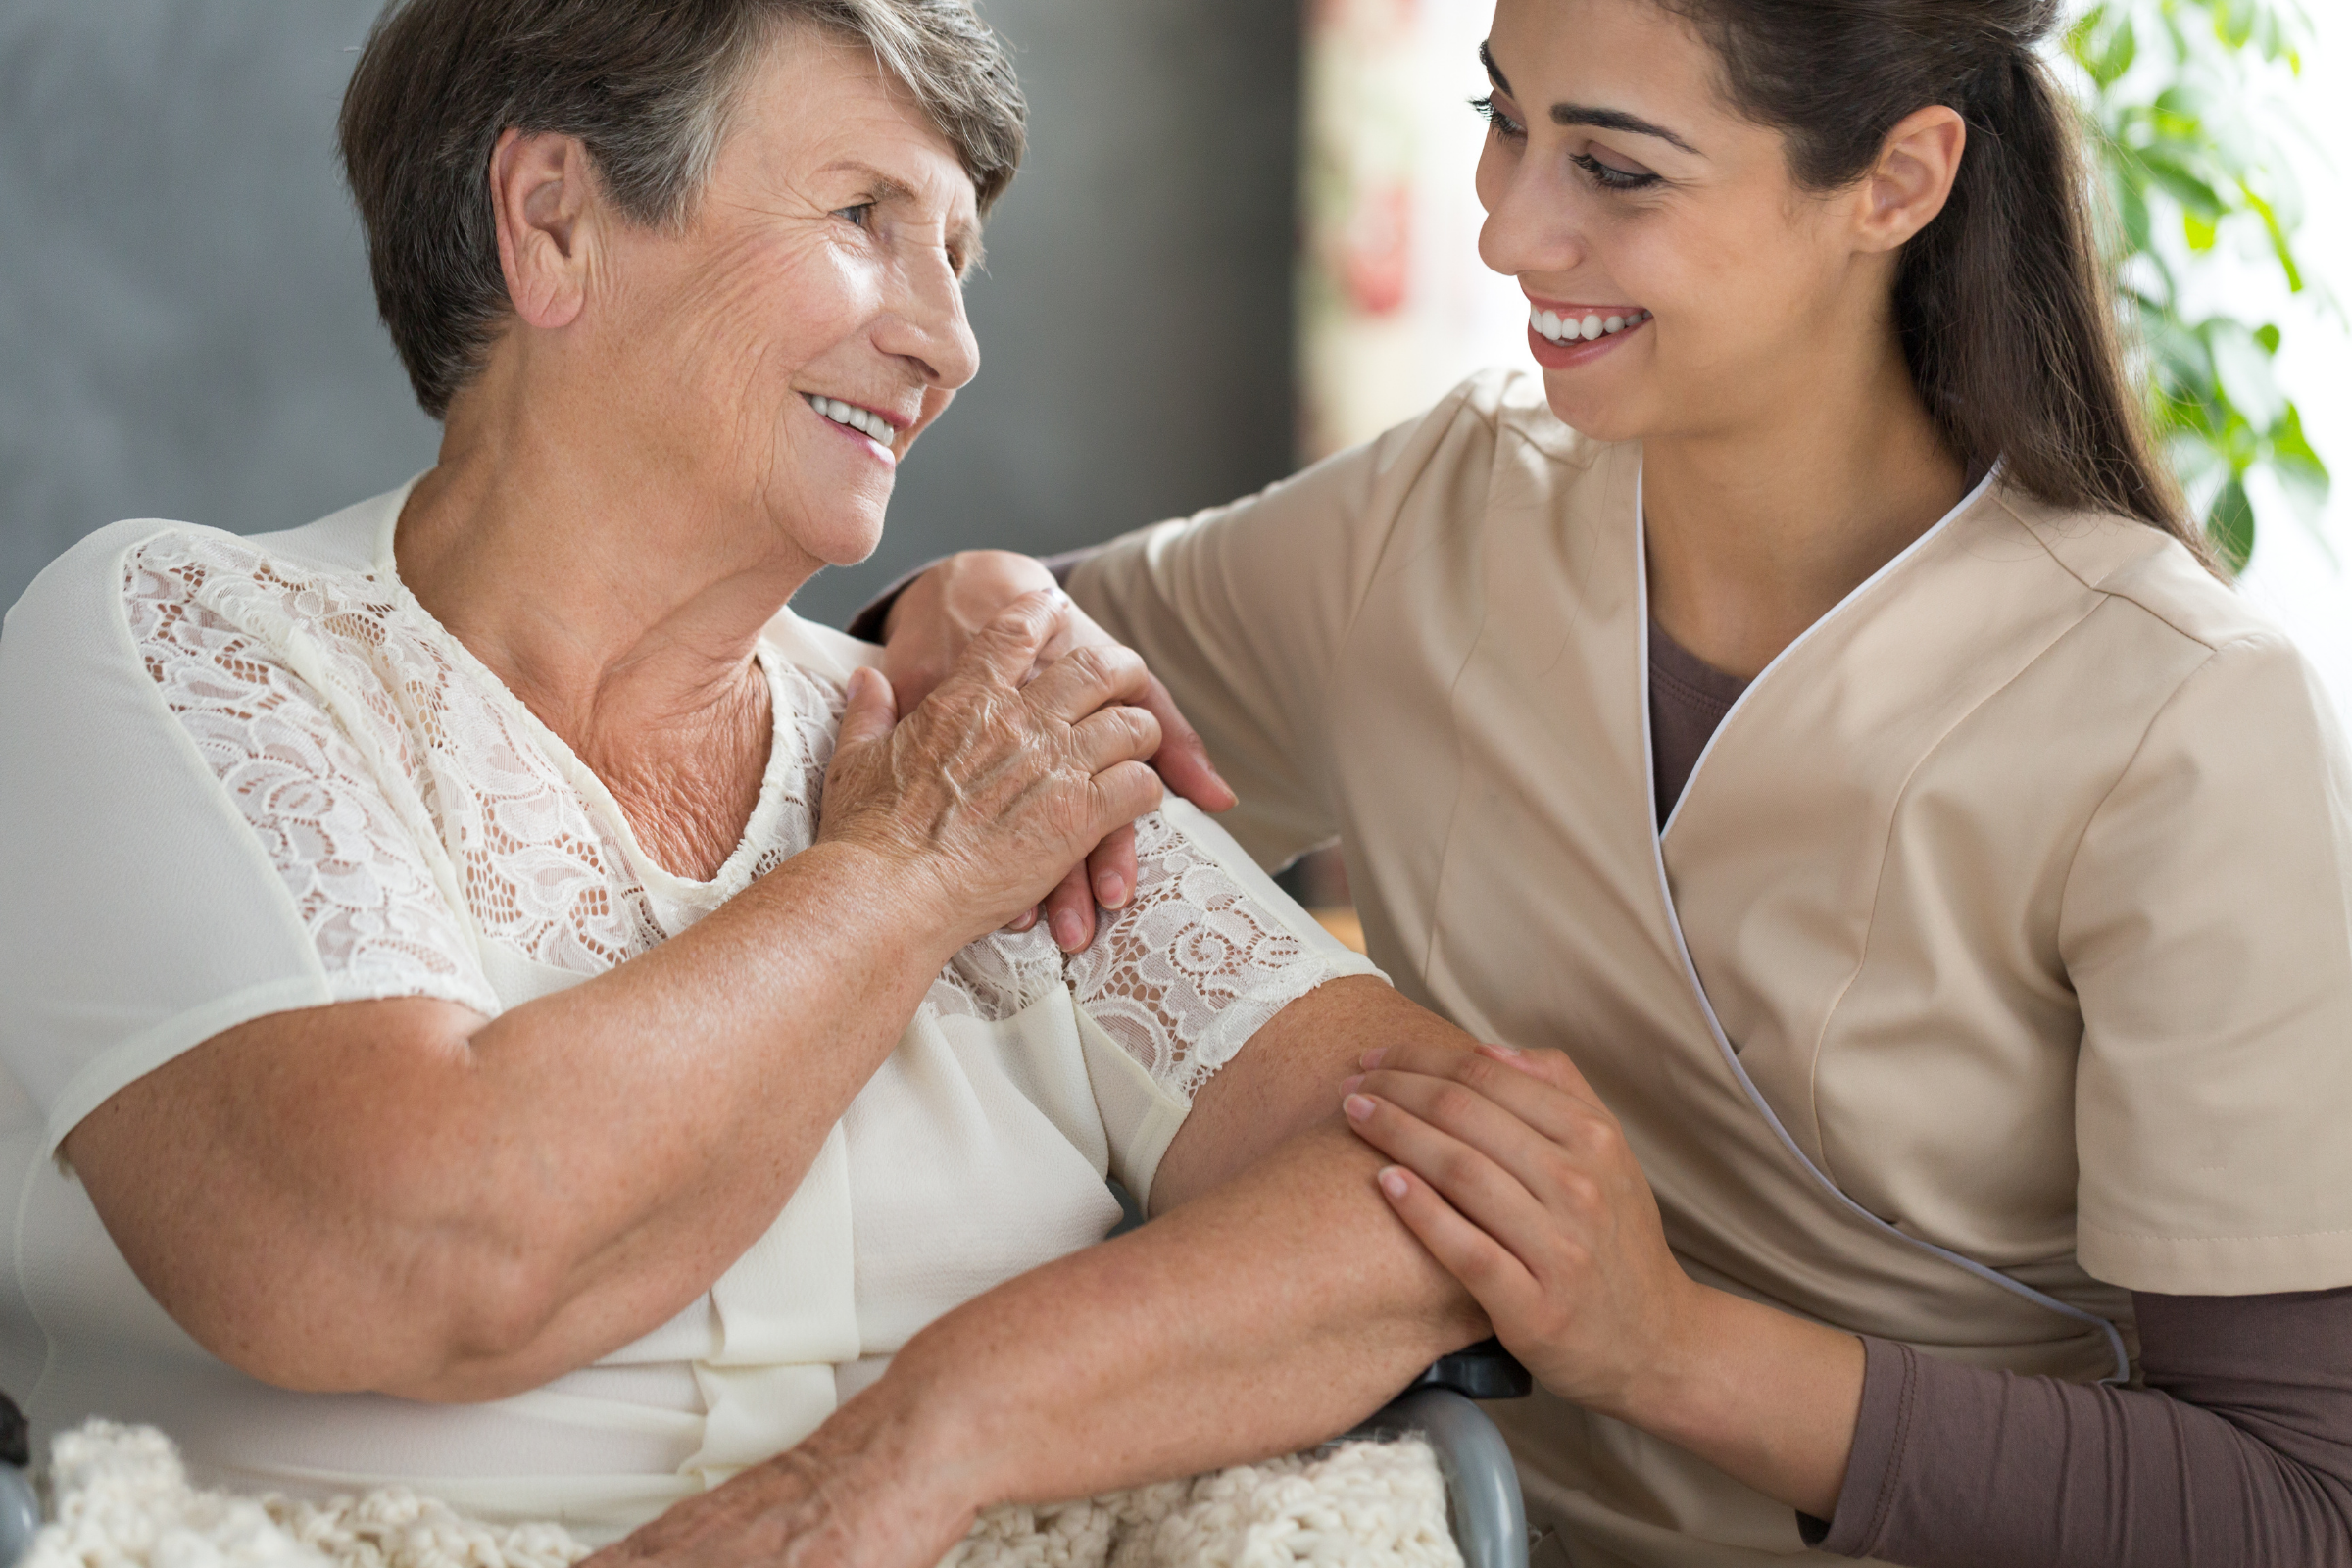 What Does a Nursing Assistant Do?